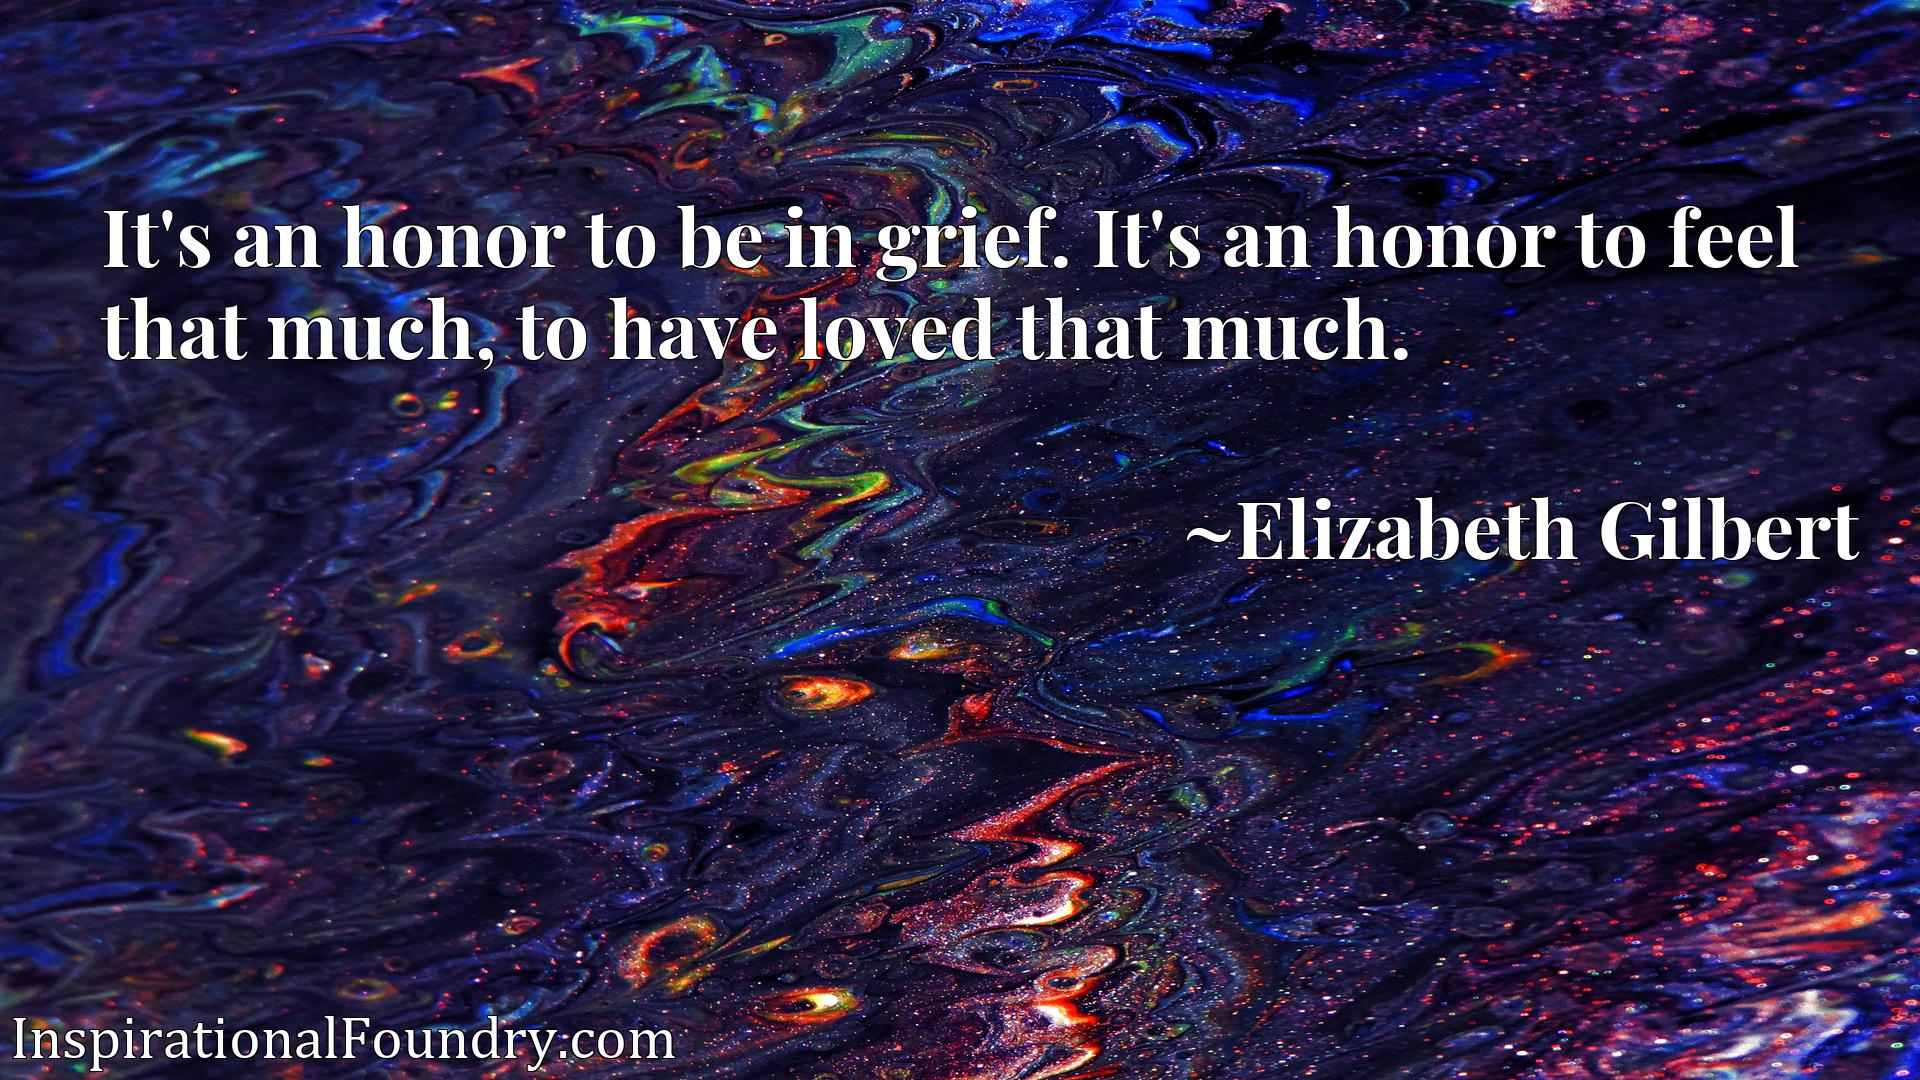 It's an honor to be in grief. It's an honor to feel that much, to have loved that much.